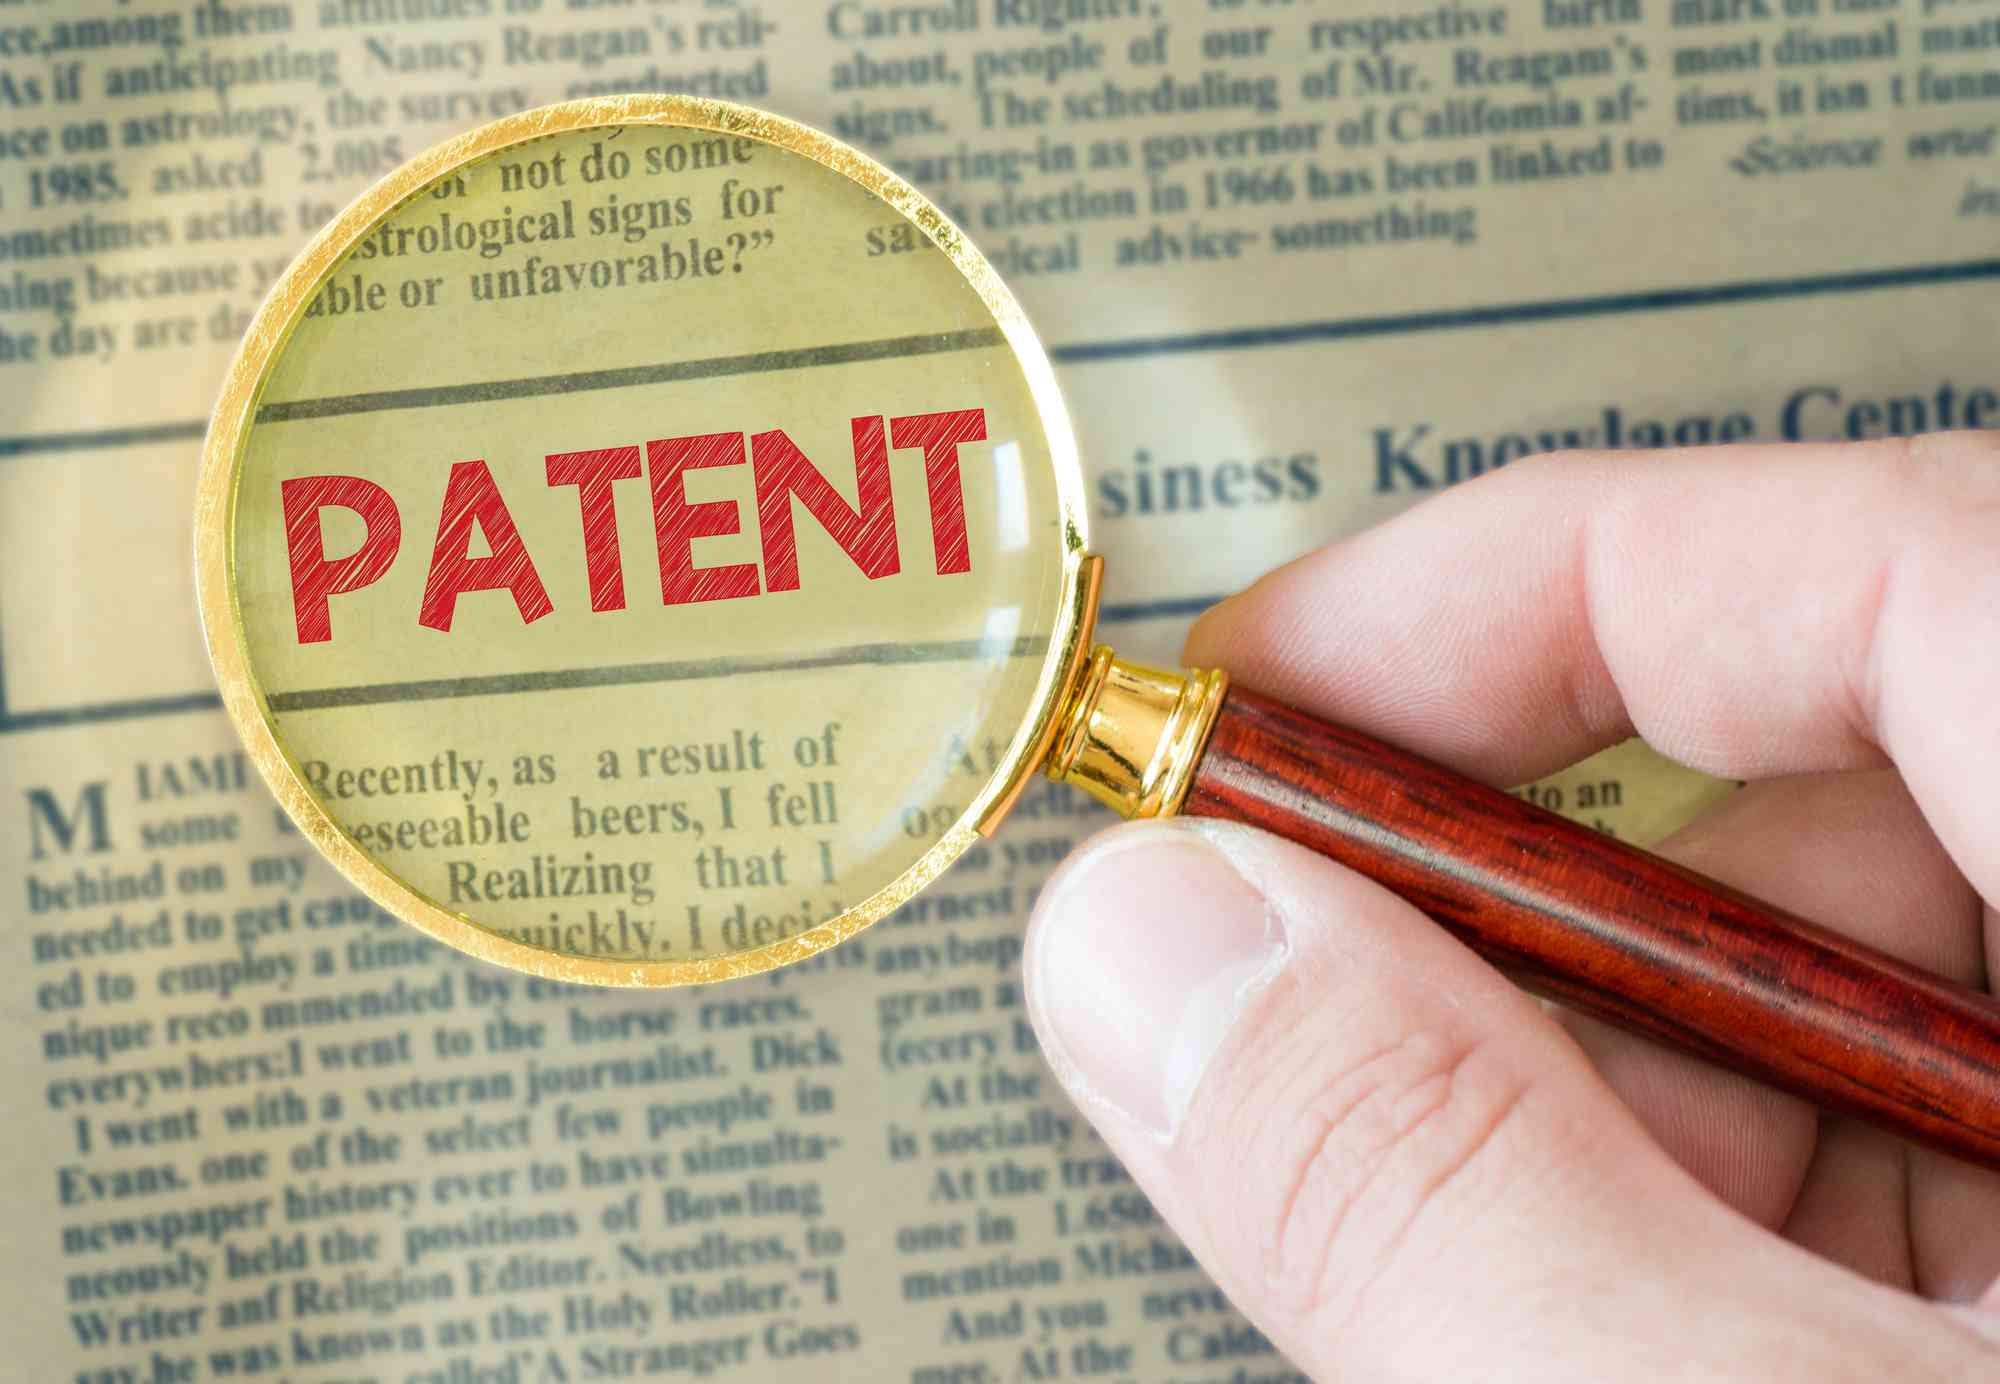 Patent Anmelden Wo